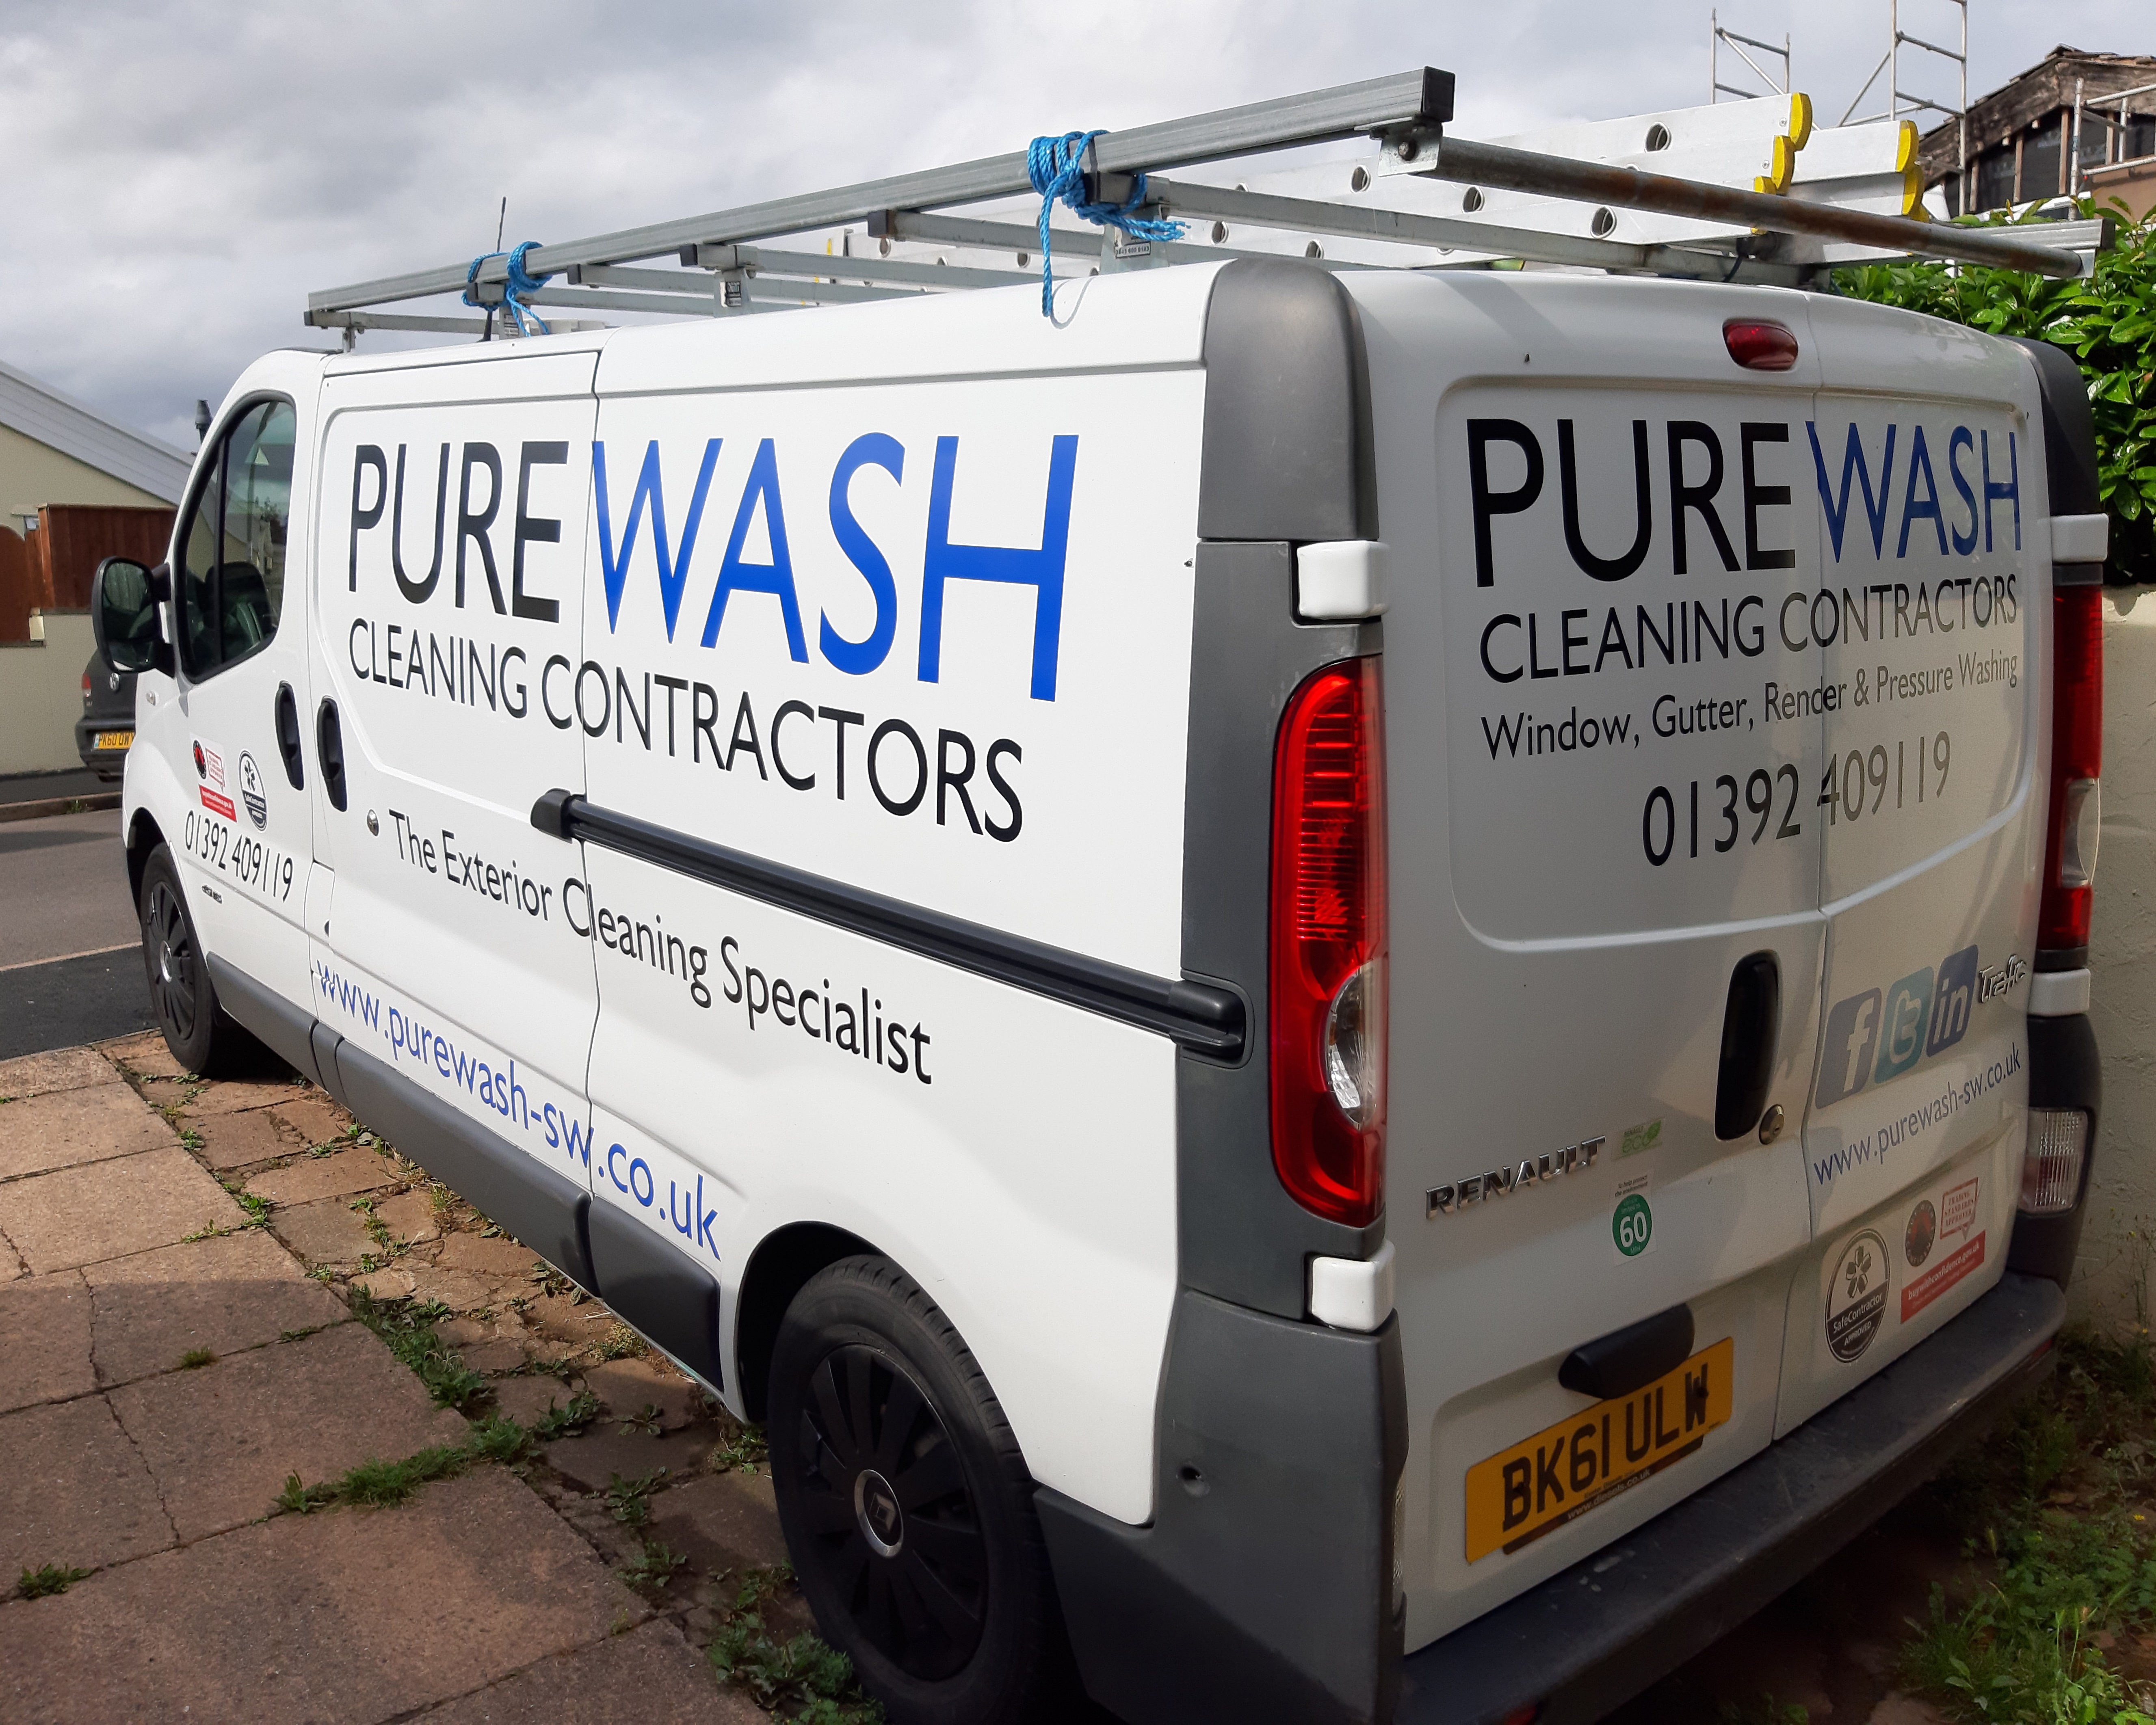 Home PureWash Cleaning Contractors